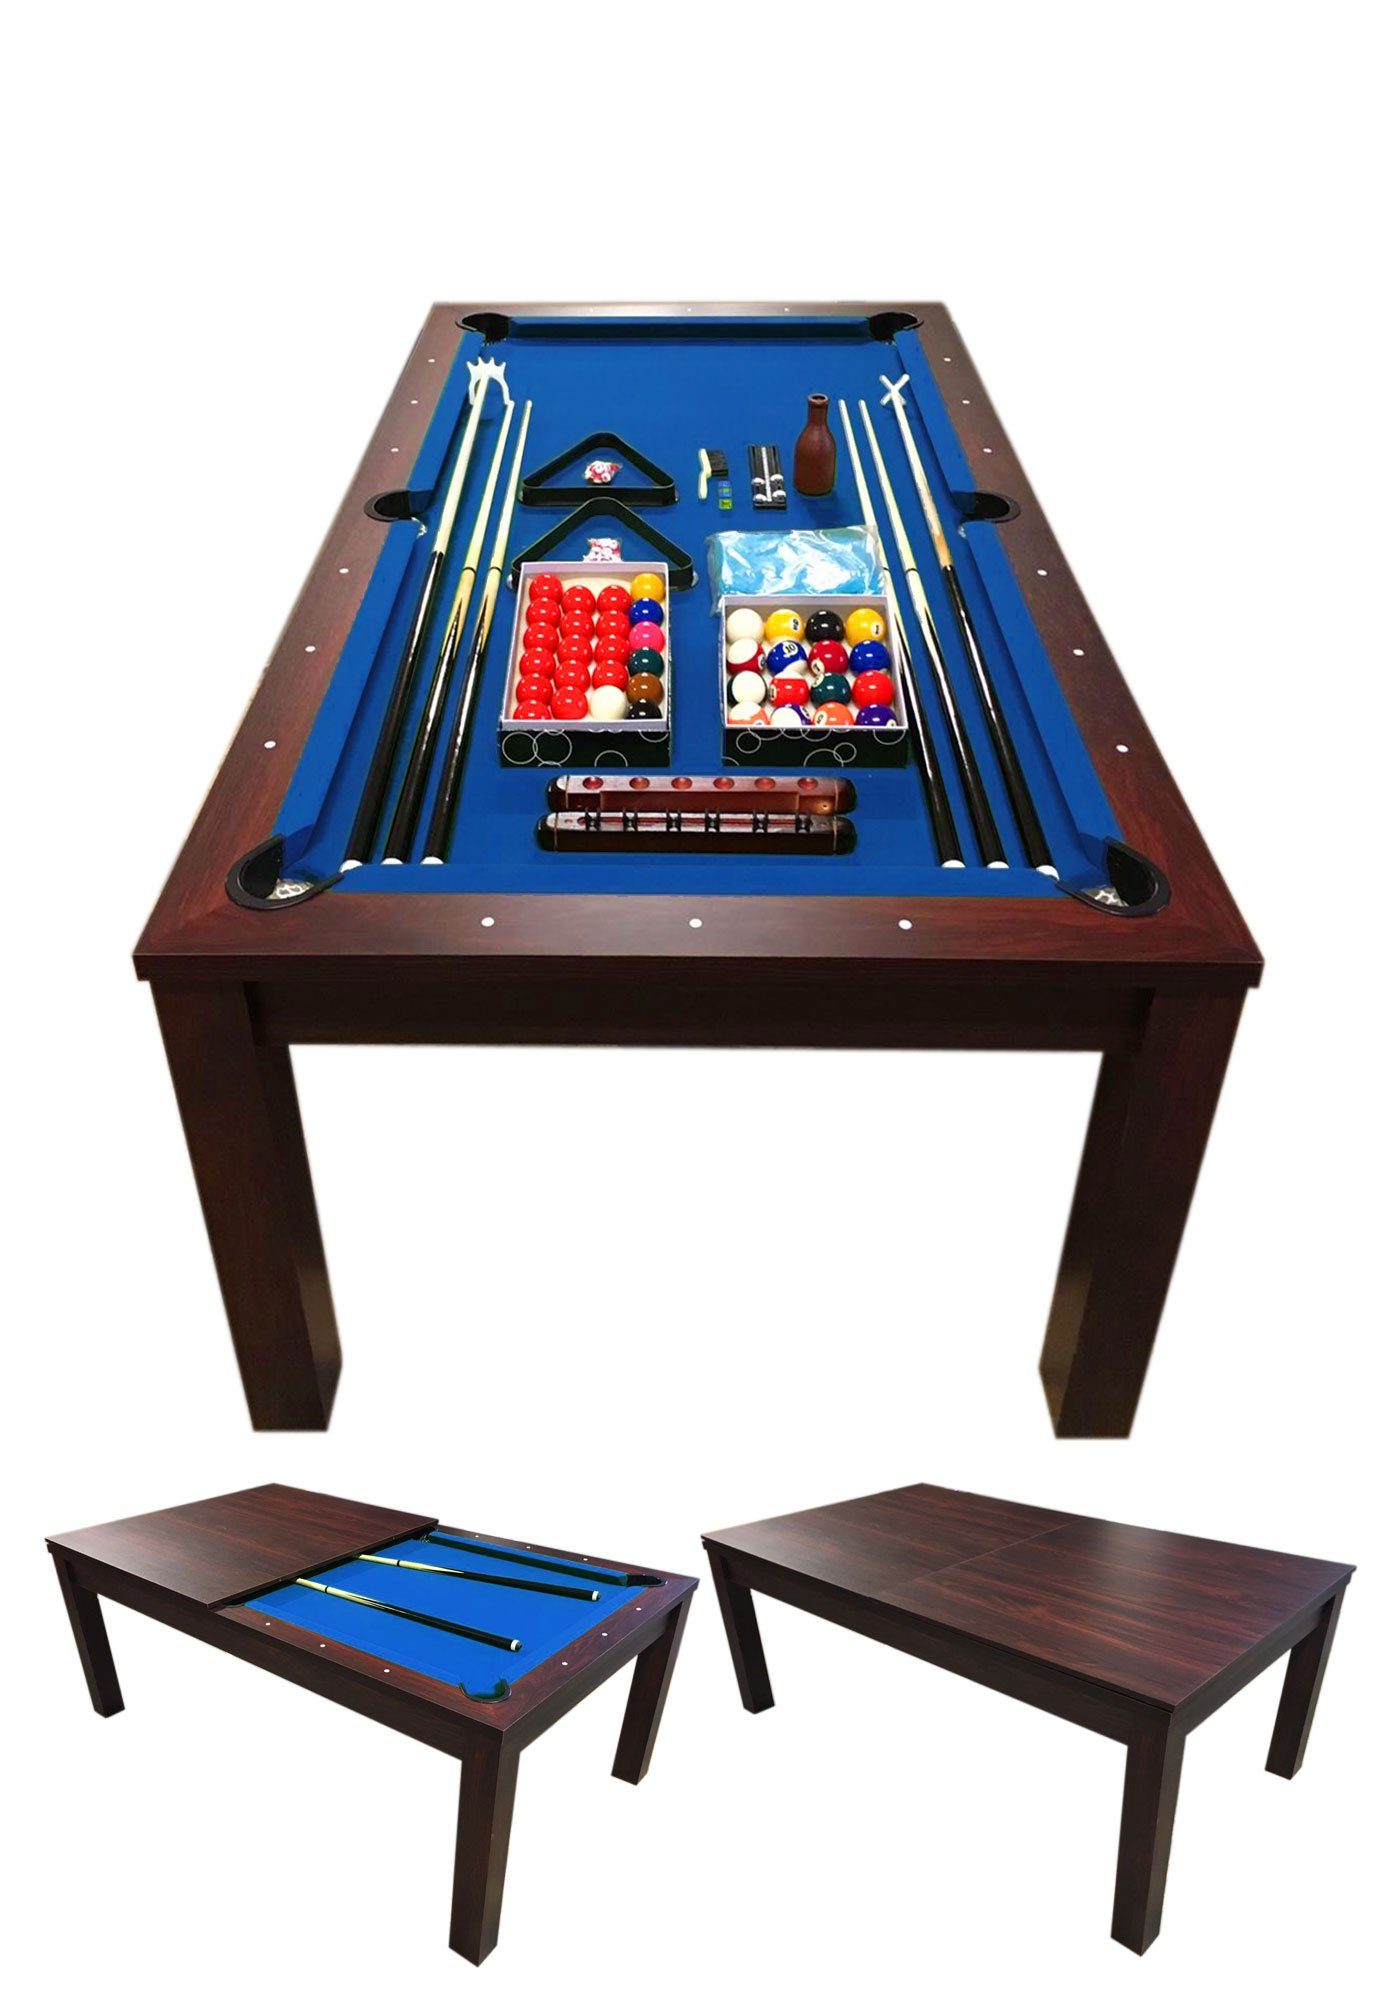 POOL TABLE 7FT Model BLUE SKY Snooker Full Accessories 7FT BECOME A BEAUTIFUL TABLE !! COVERAGE PLAN INCLUDED IN THE PRICE !!